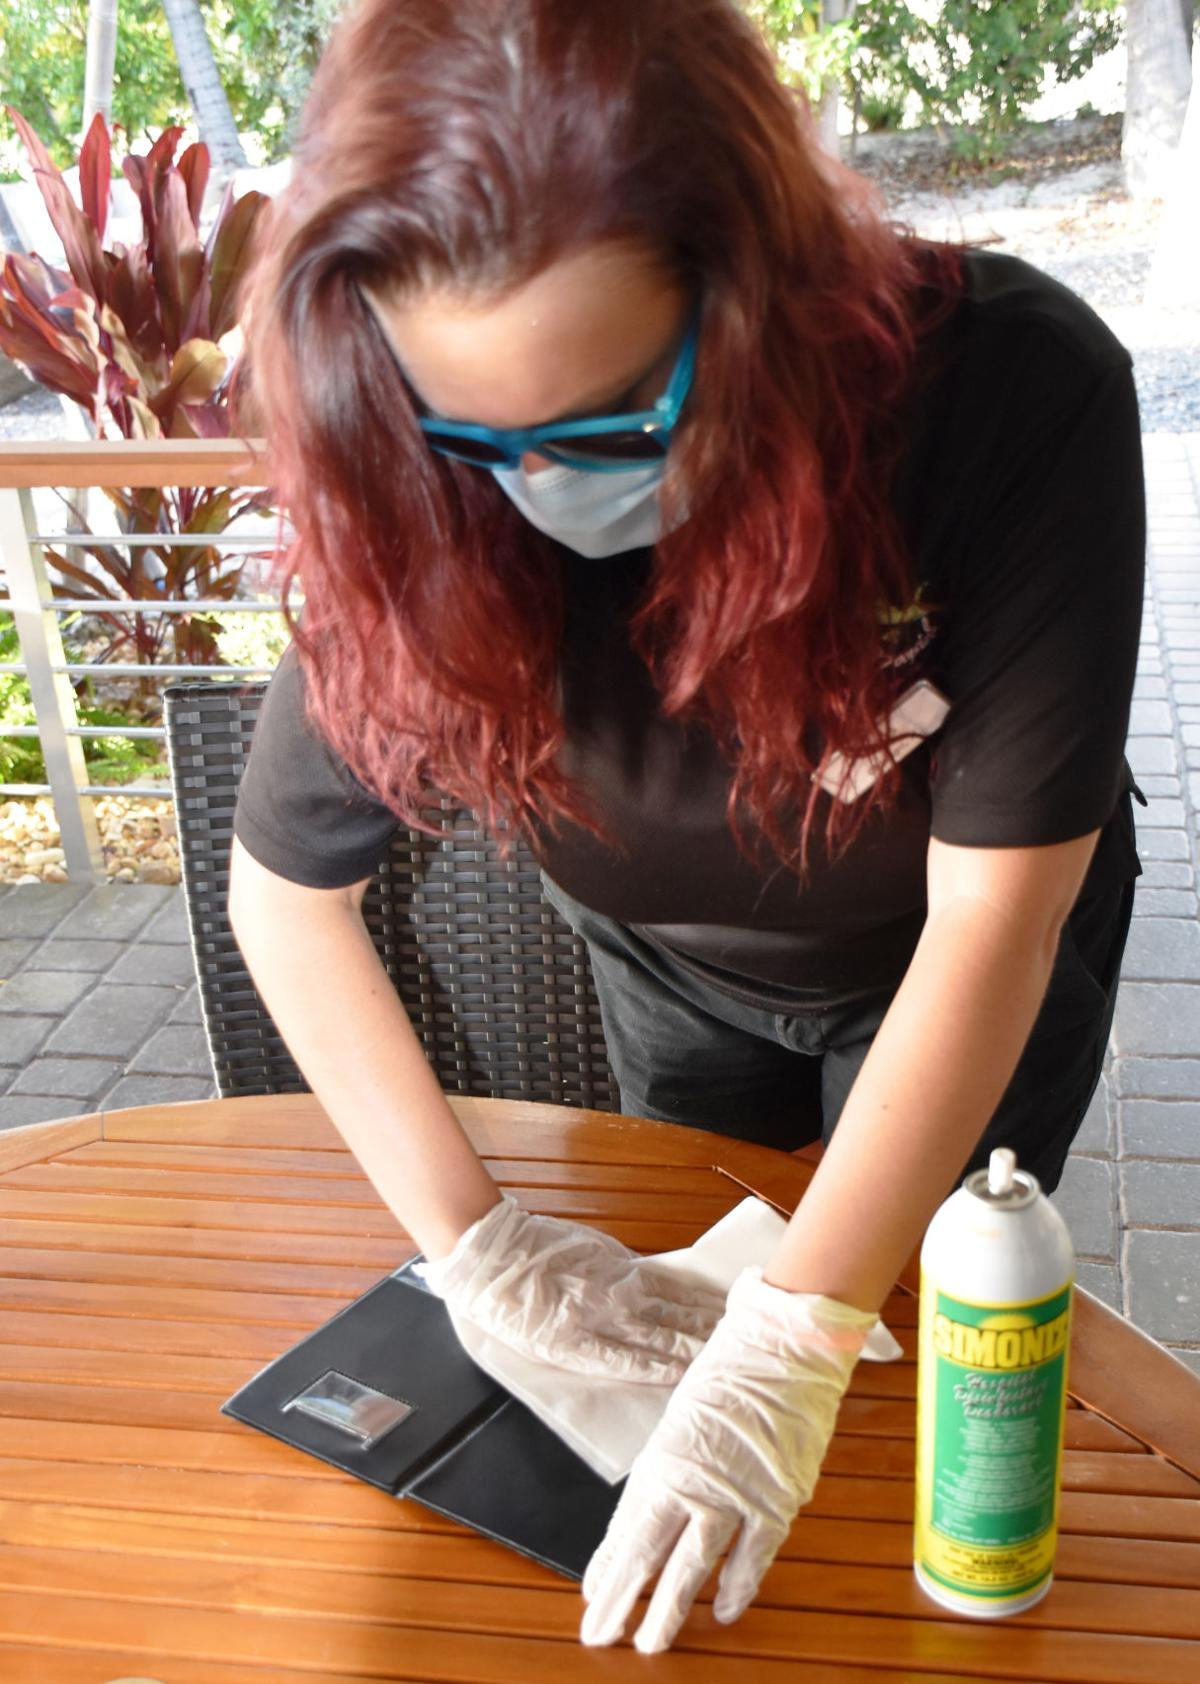 Staff at Snook's sanitize the restaurant's check holders after each use.